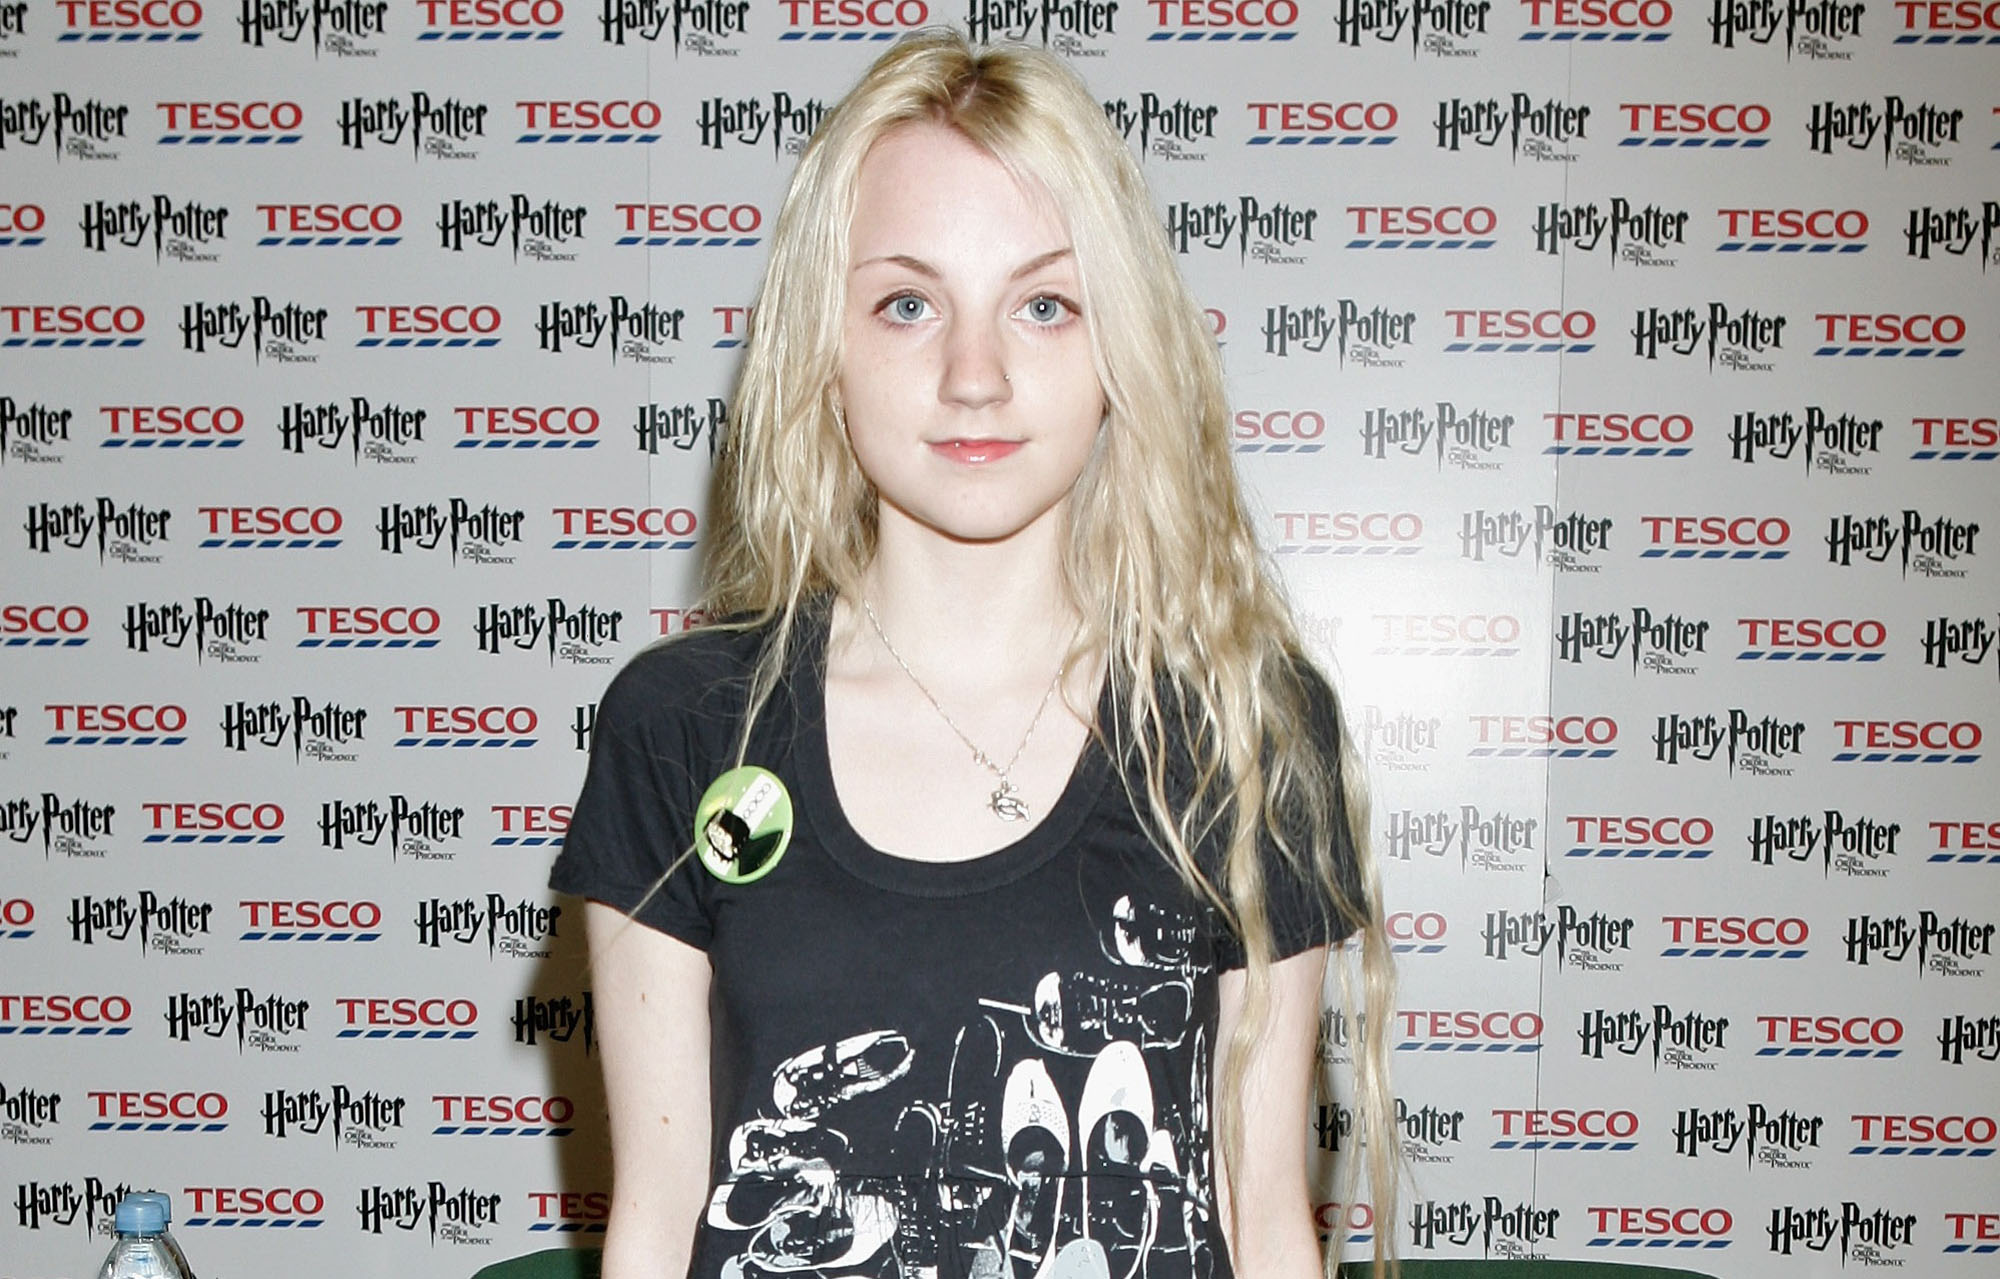 Harry Potter actress Evanna Lynch (Luna Lovegood) poses for a photograph at a photocall in Tescos Extra Watford on July 14, 2007 in London, England.  (Photo by Chris Jackson/Getty Images)